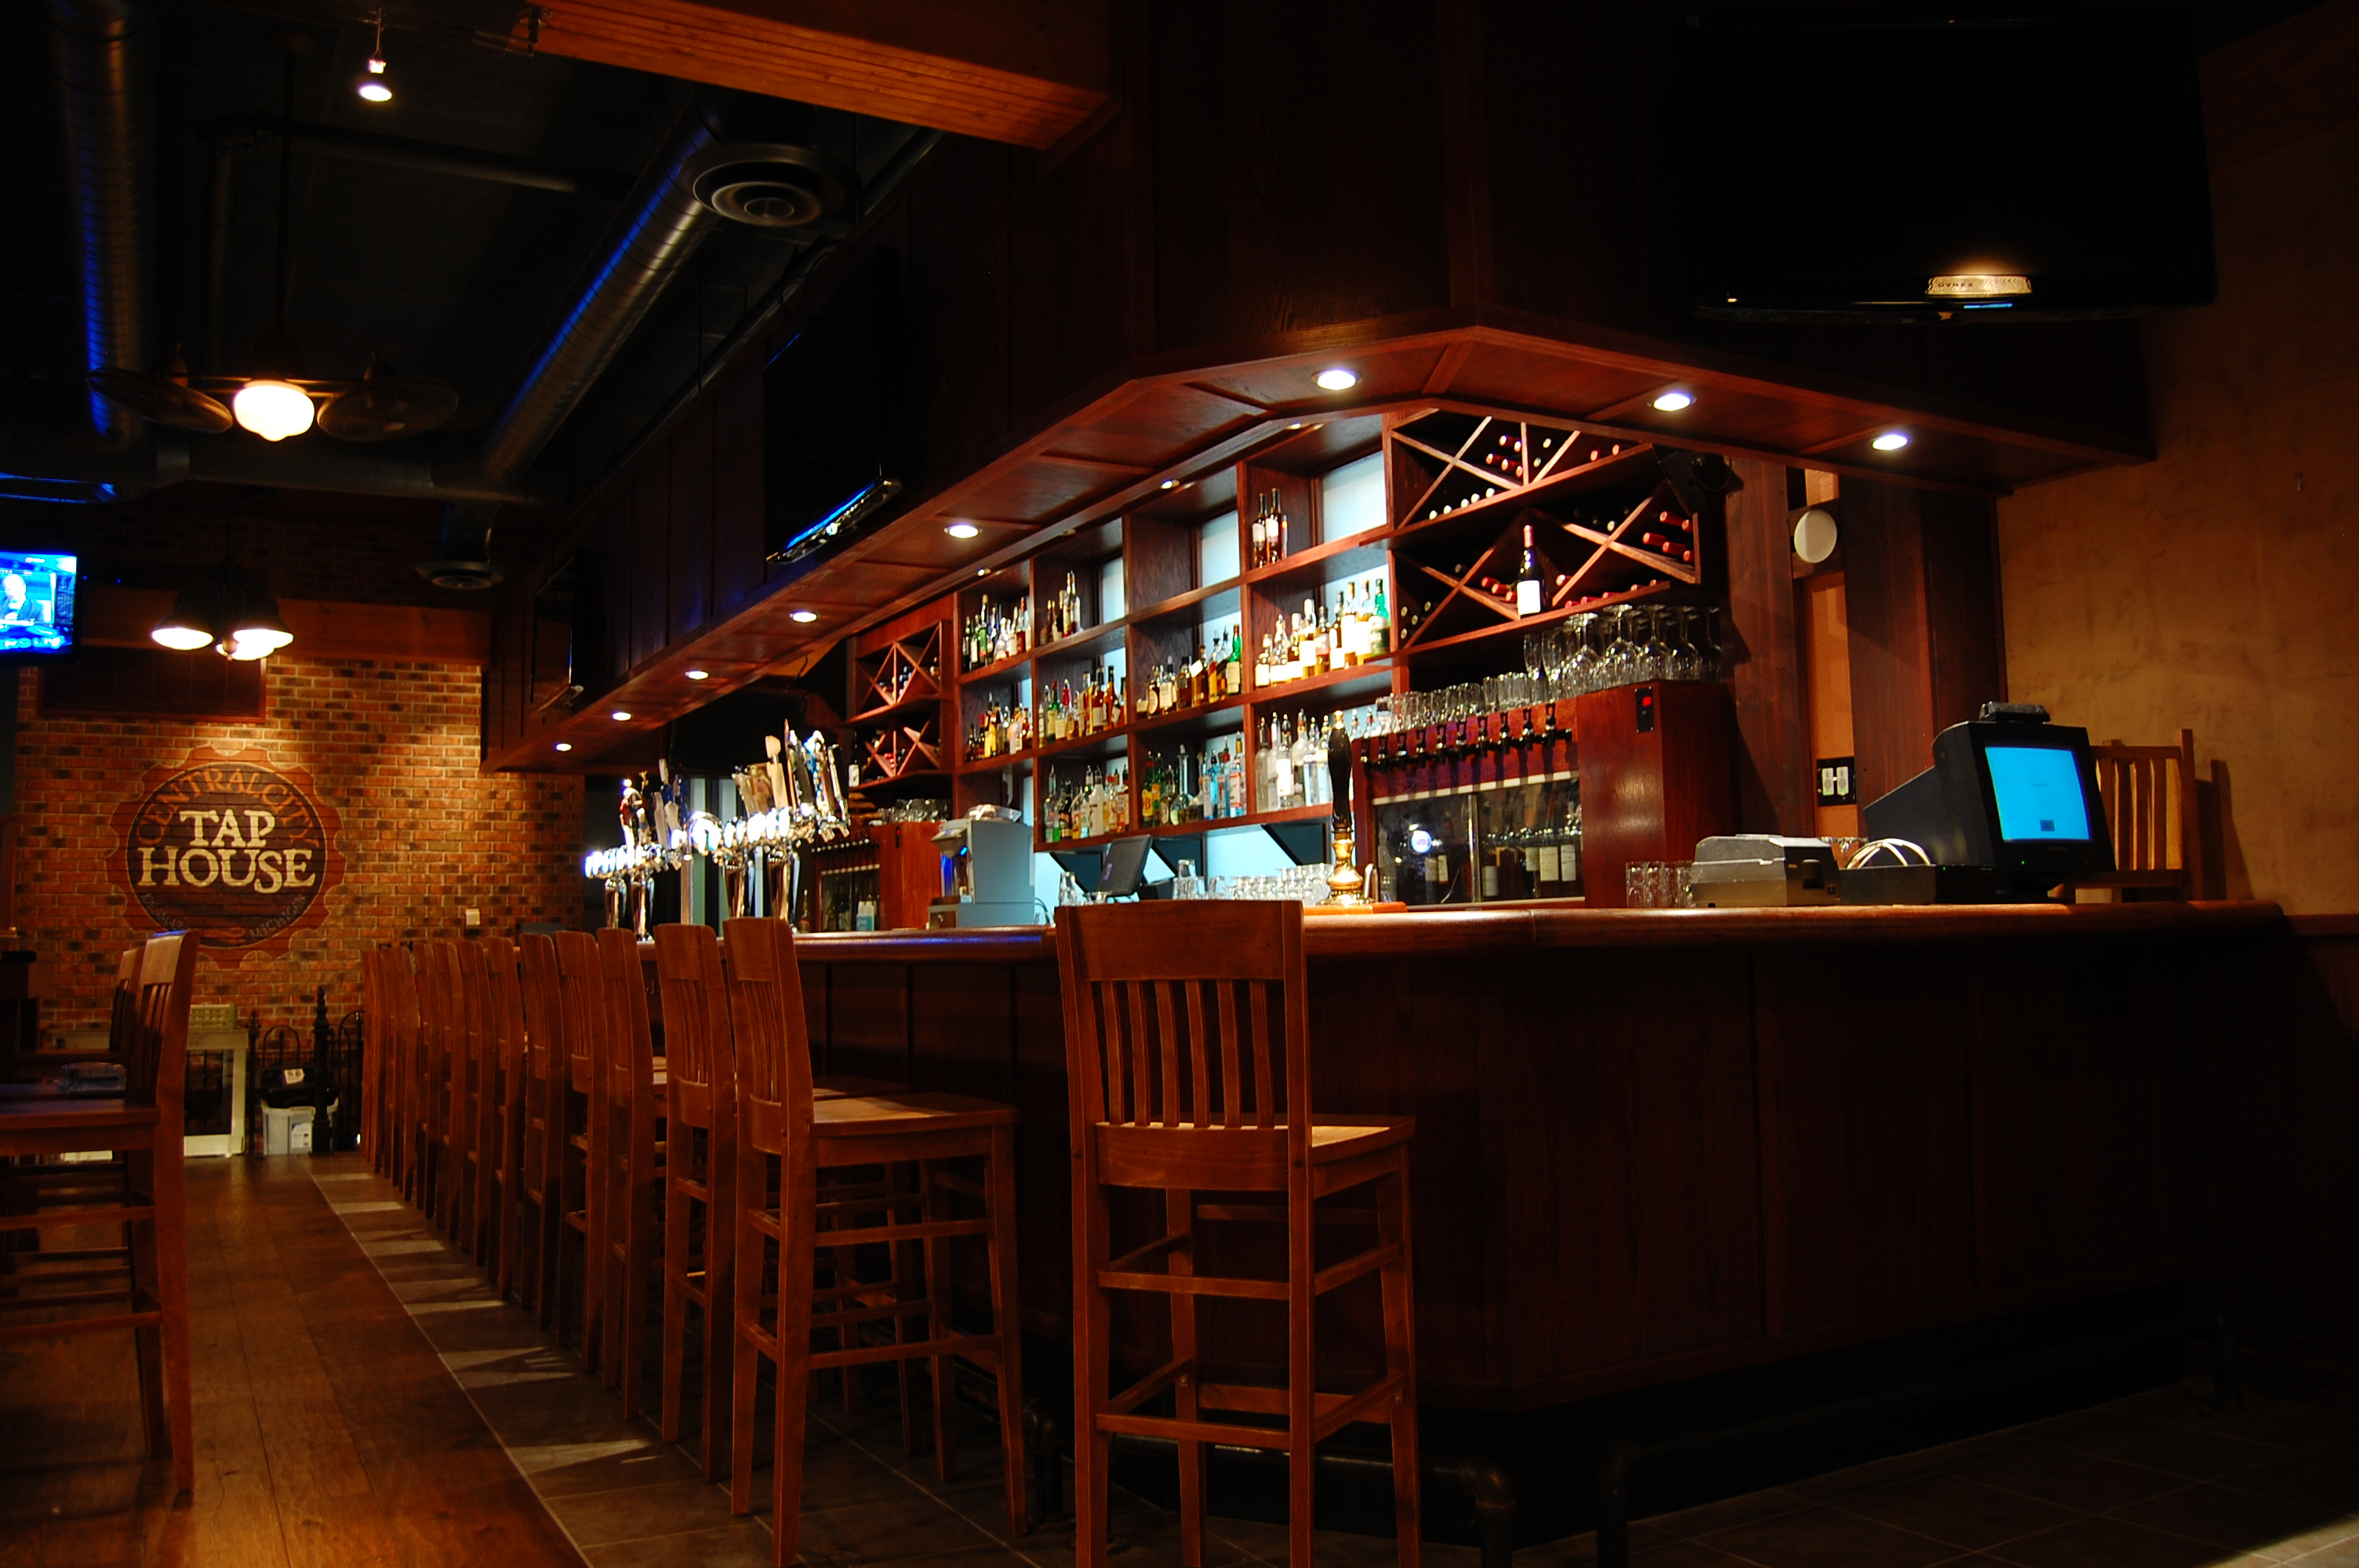 Central City Tap House in downtown Kalamazoo.